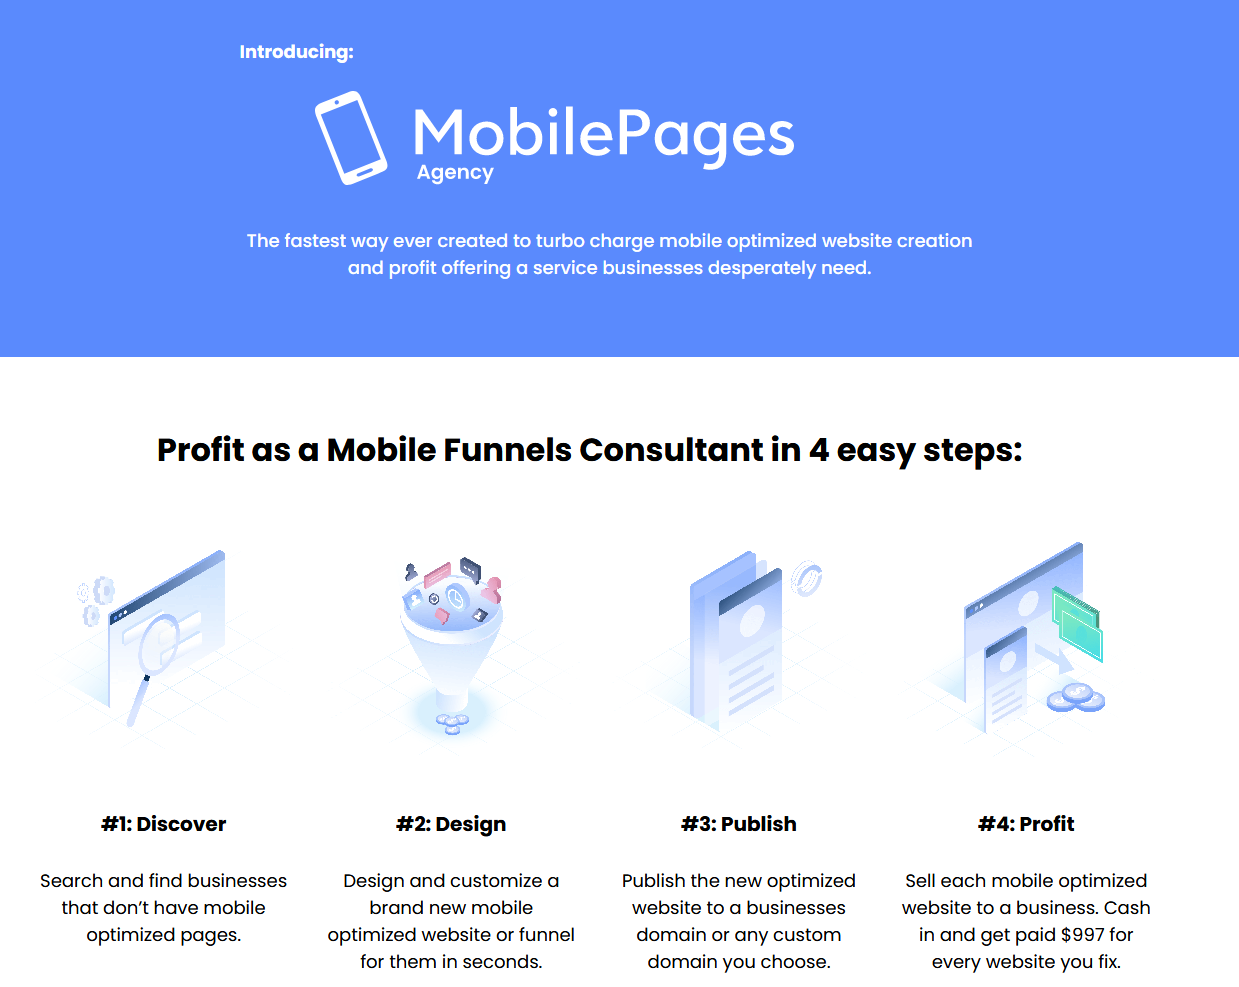 http://awreviews.com/mobile-pages-by-adsightpro-coupon-code/